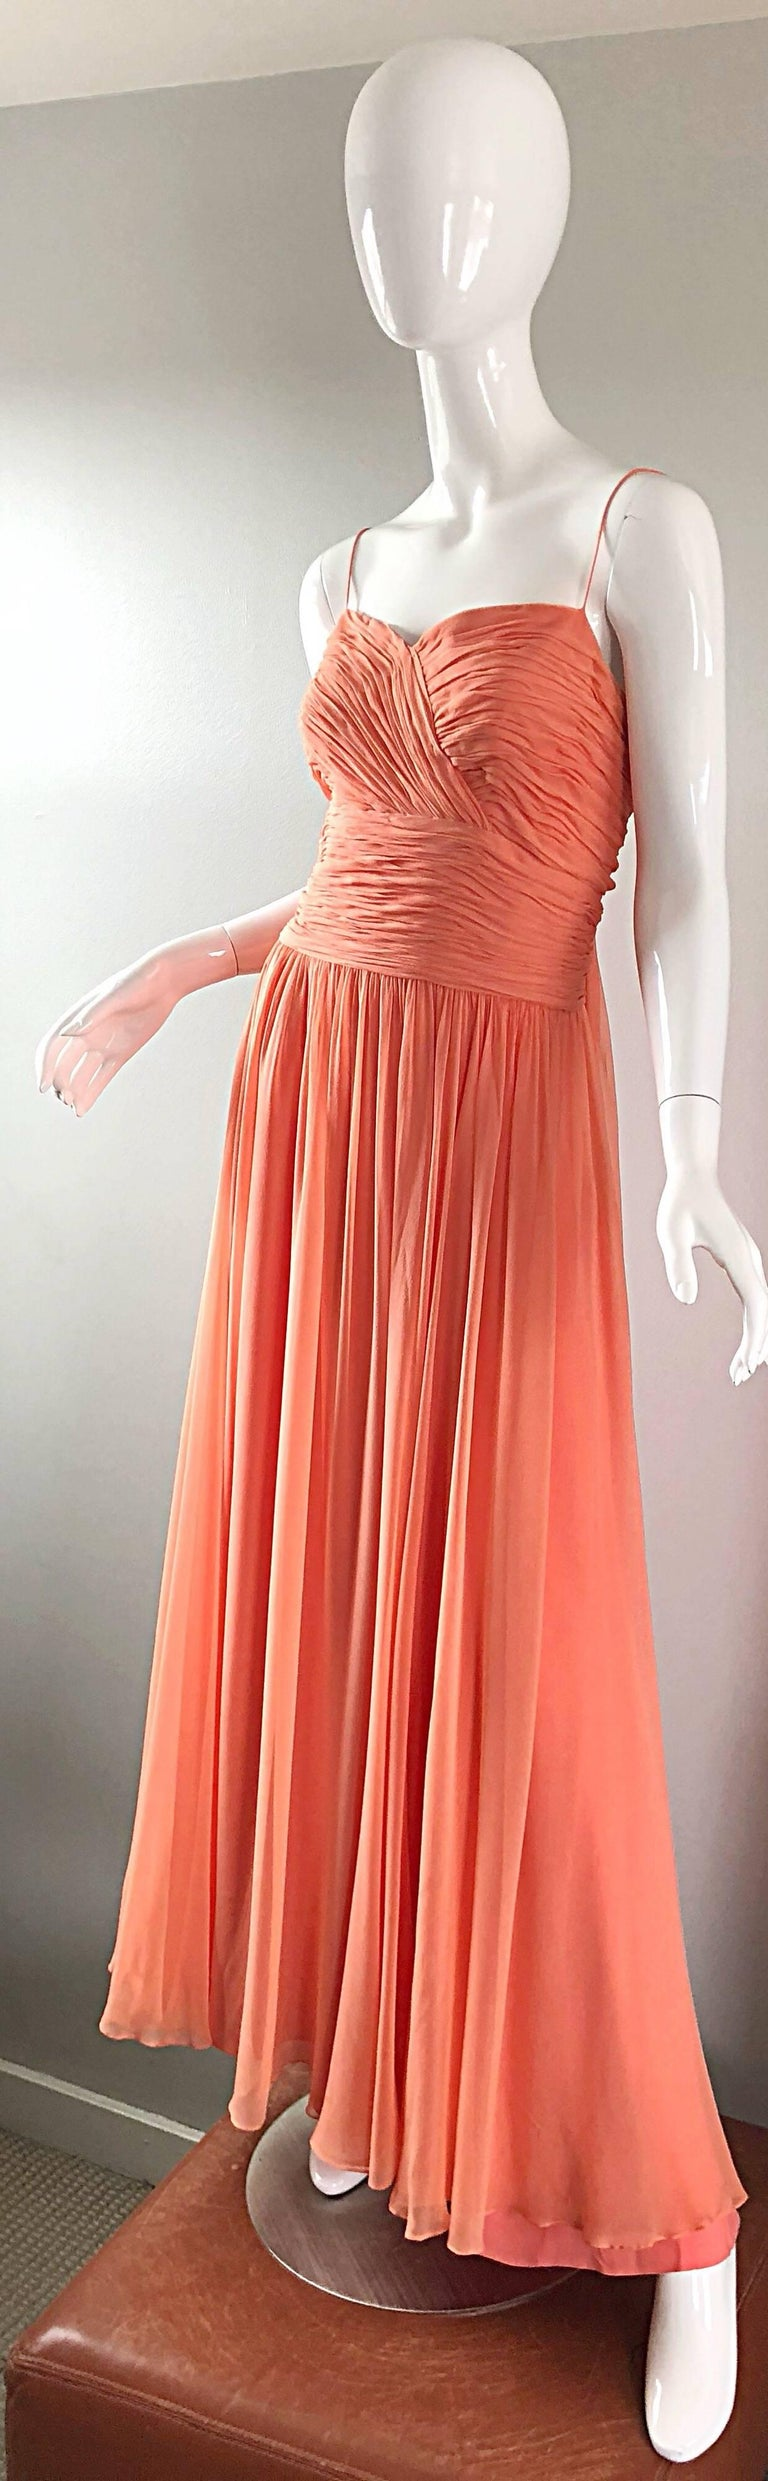 Gorgeous 1950s Saks 5th Ave. Salmon / Coral Pink Silk Chiffon Vintage 50s Gown For Sale 6